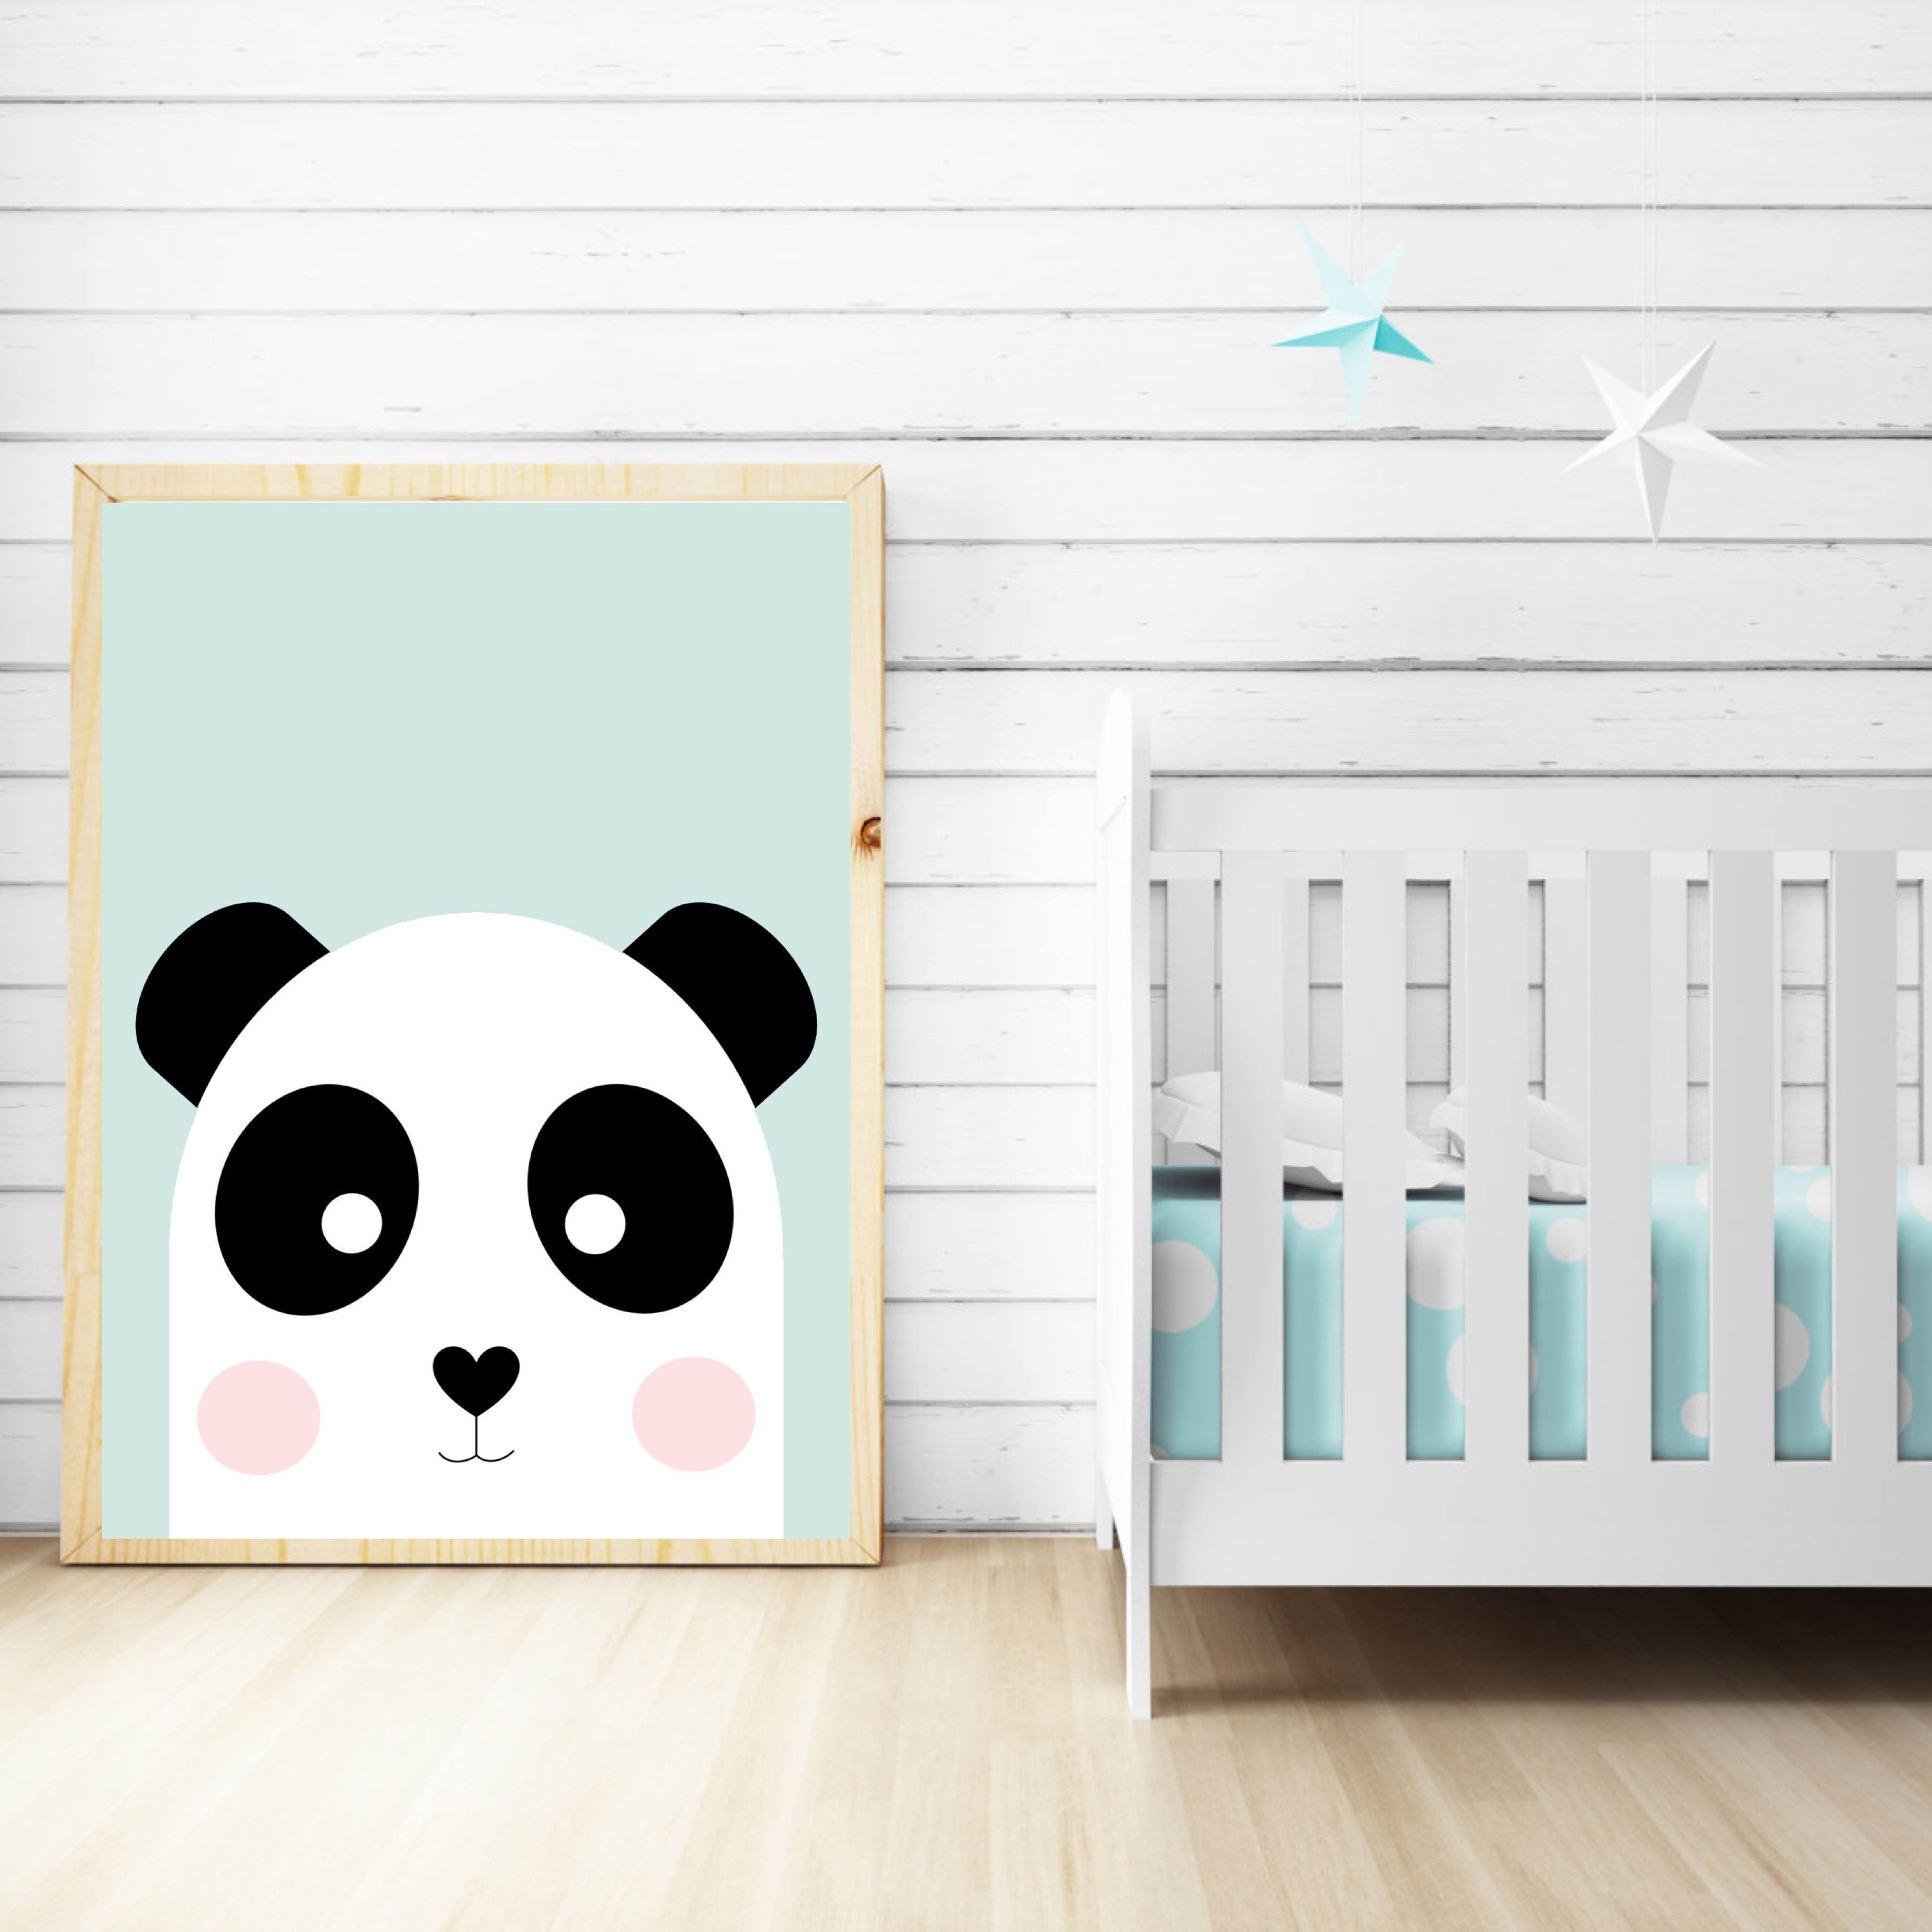 Best And Newest Illustration Kids Art Print, Kids Room Decor, Nursery, Baby, Wall Intended For Baby Wall Art (View 8 of 15)